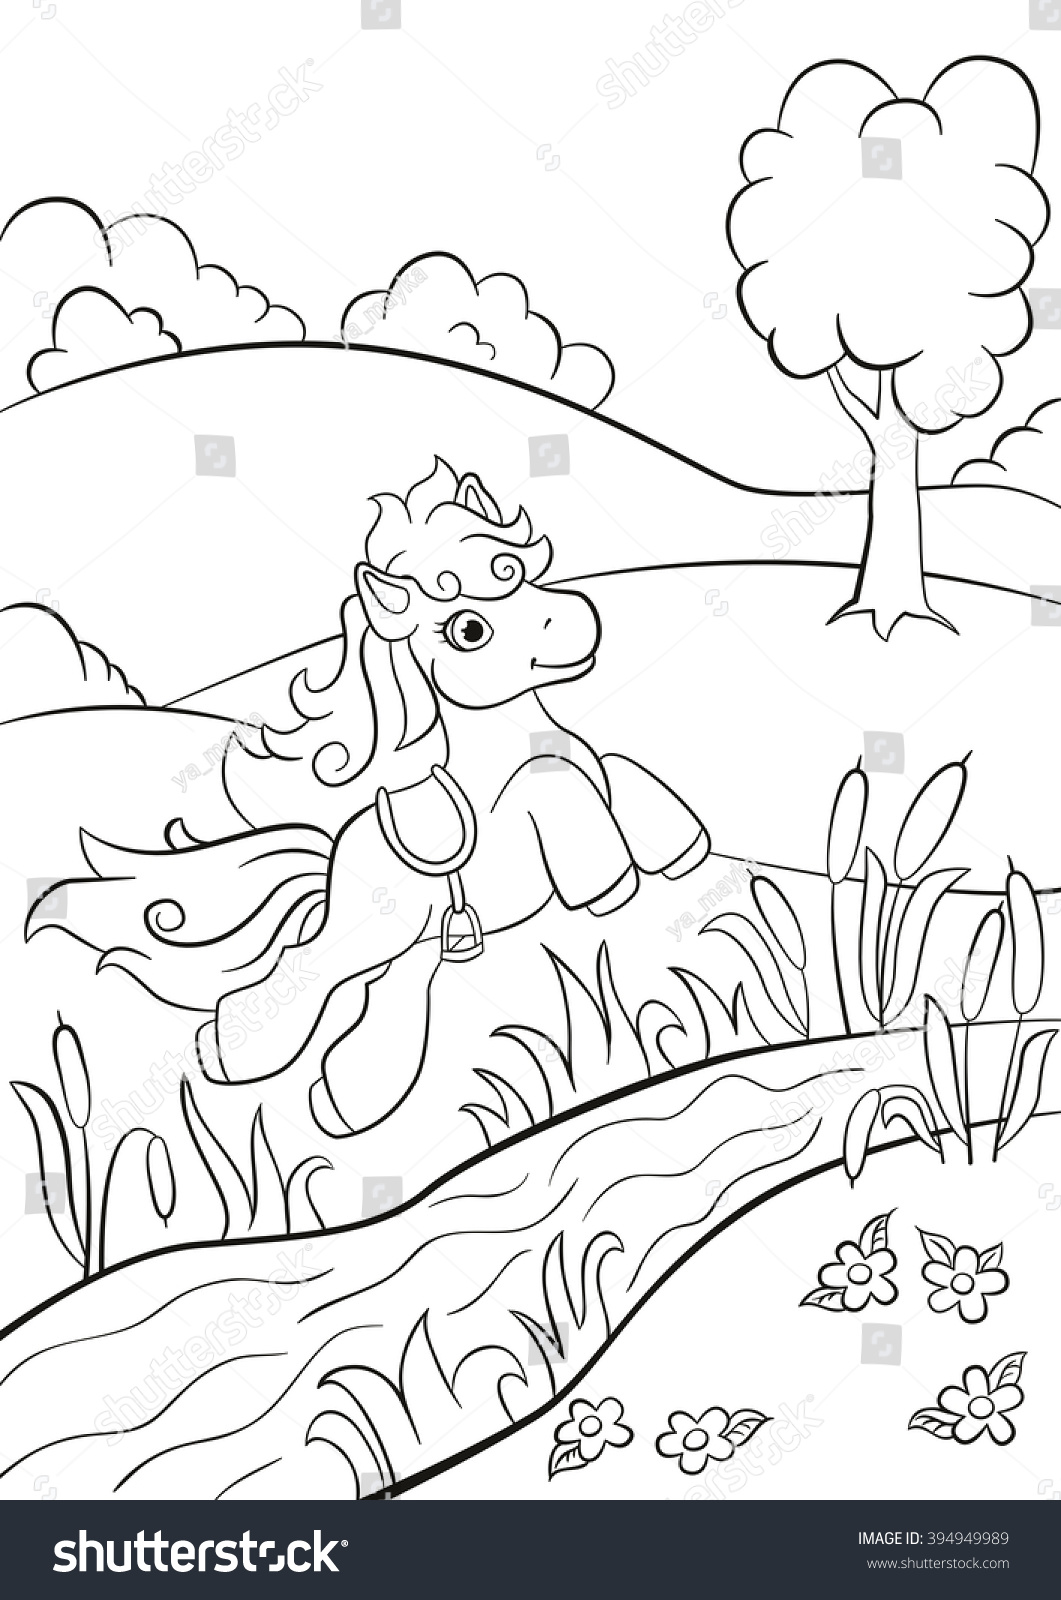 River coloring pages | Coloring pages to download and print | 1600x1061